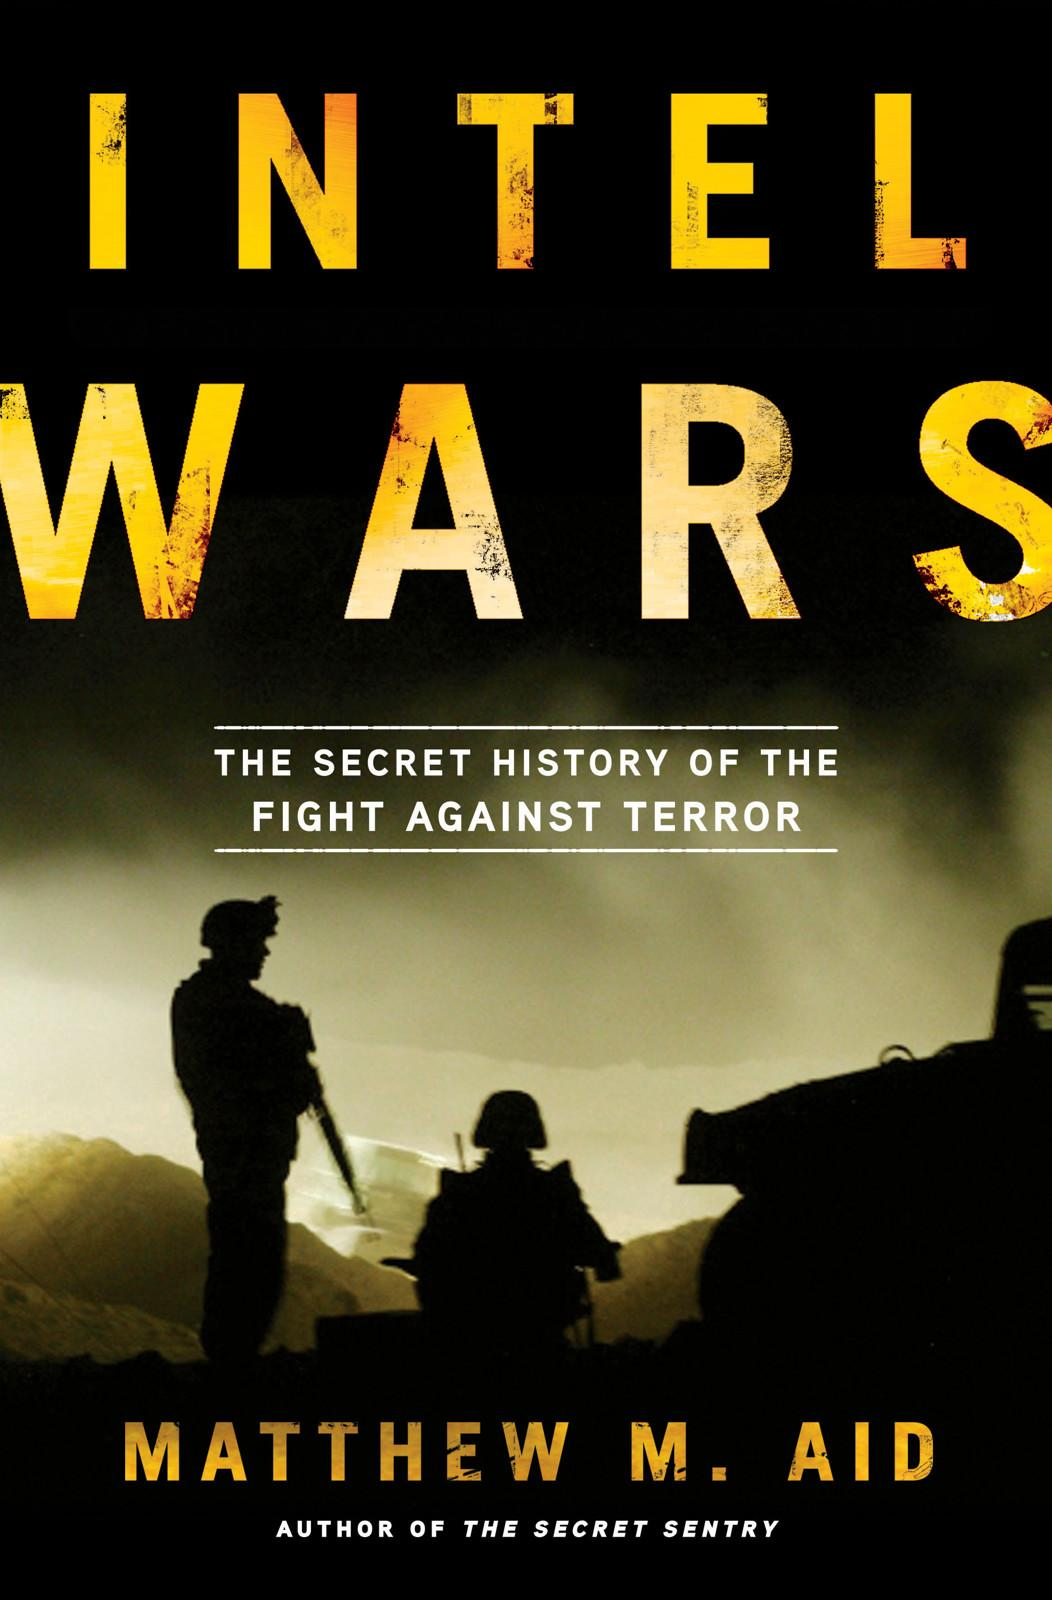 Intel Wars: The Secret History of the Fight Against Terror download dree